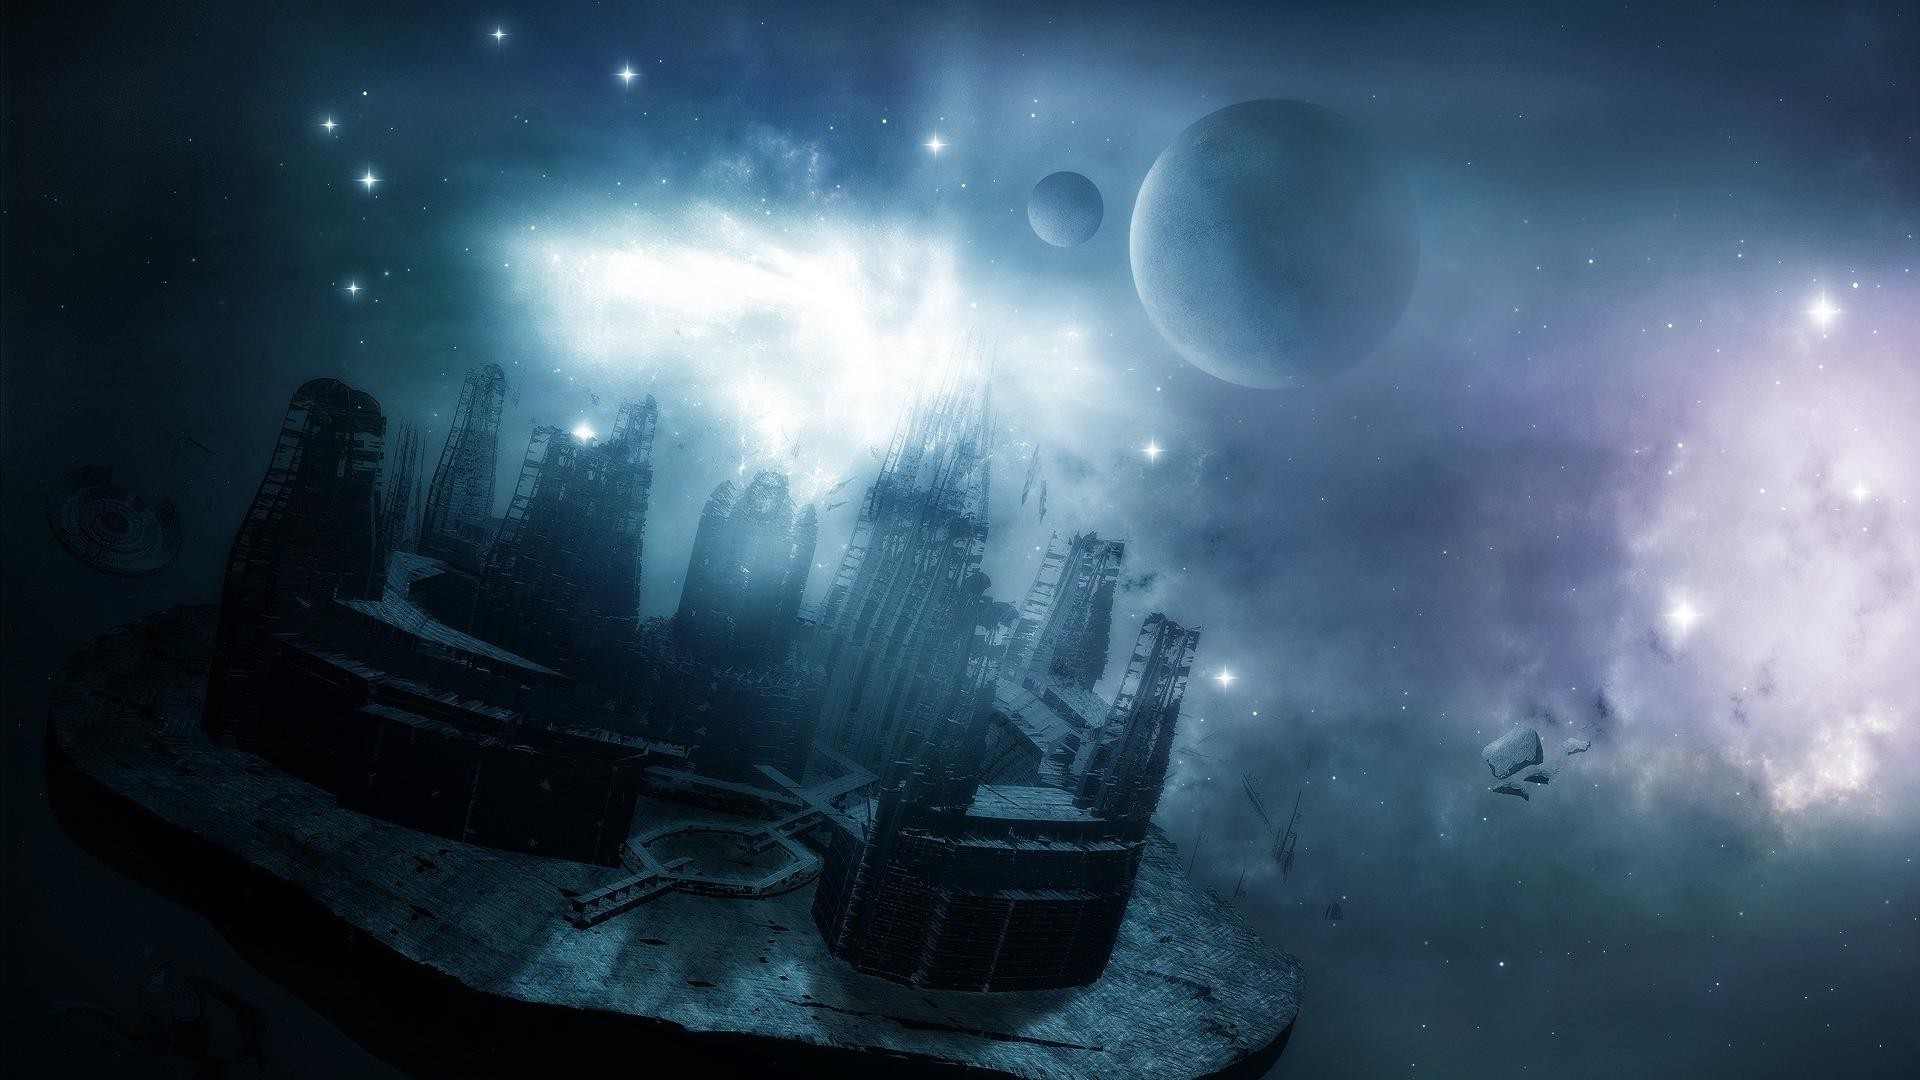 space future 7 scarey future events in our solar systemthat affect us from us entering a gas cloud in the next 20 years to the sun exploding to life forming on marsthese are 7 scarey future space events.